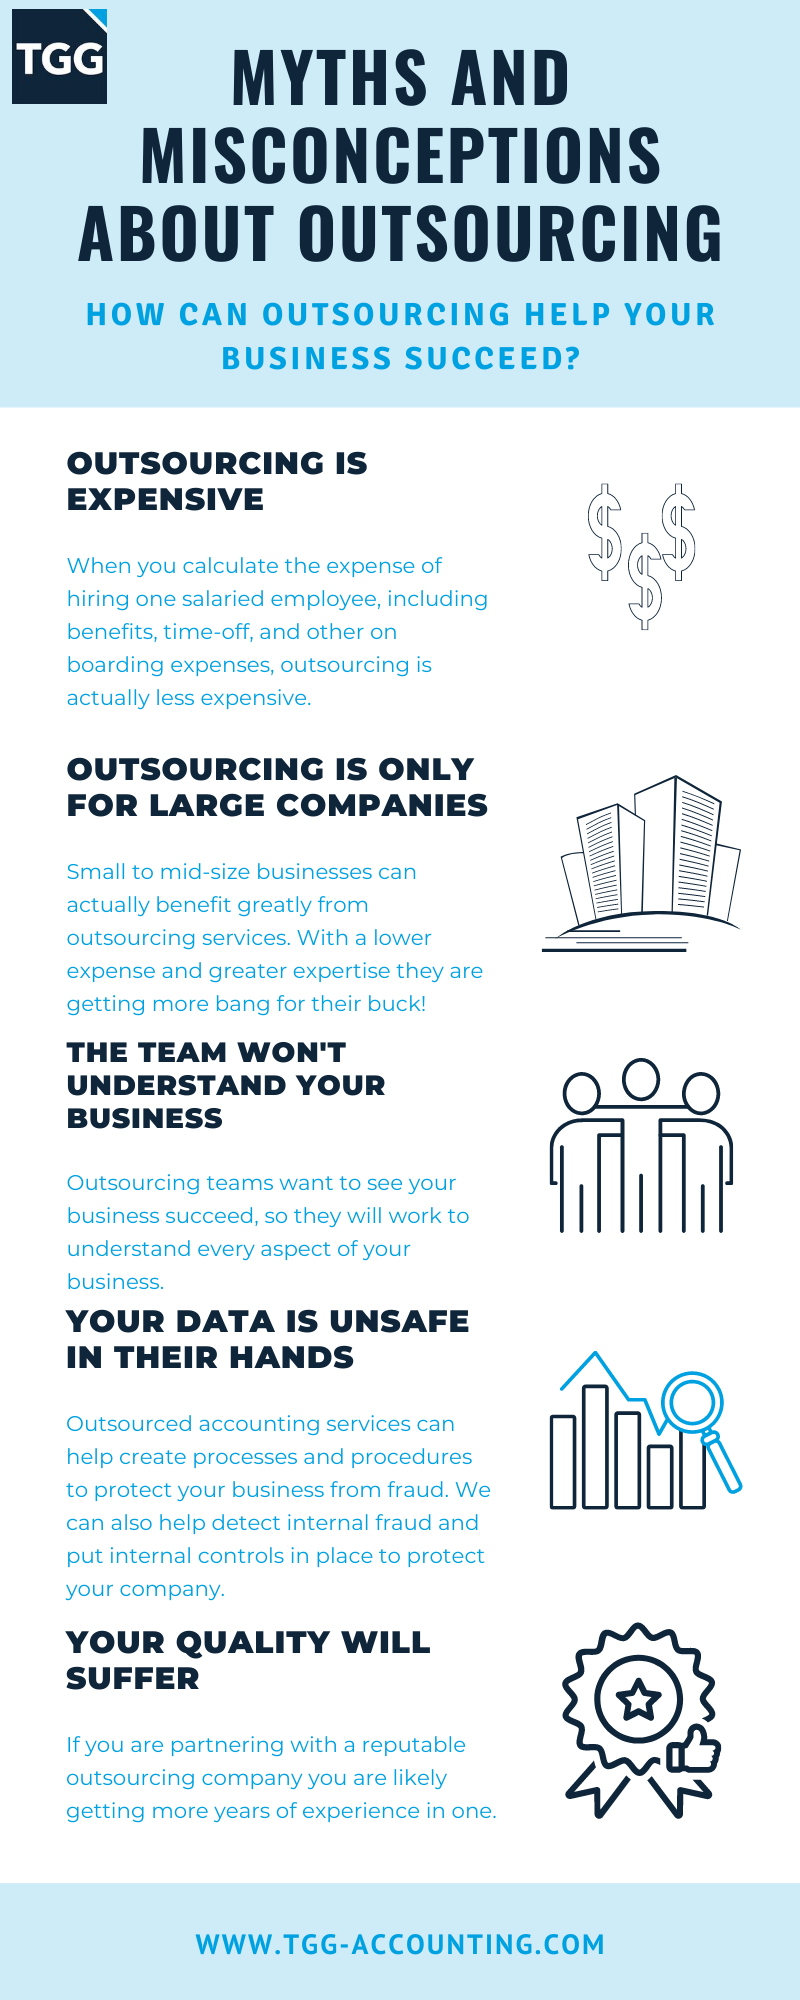 Myths and misconceptions about outsourcing